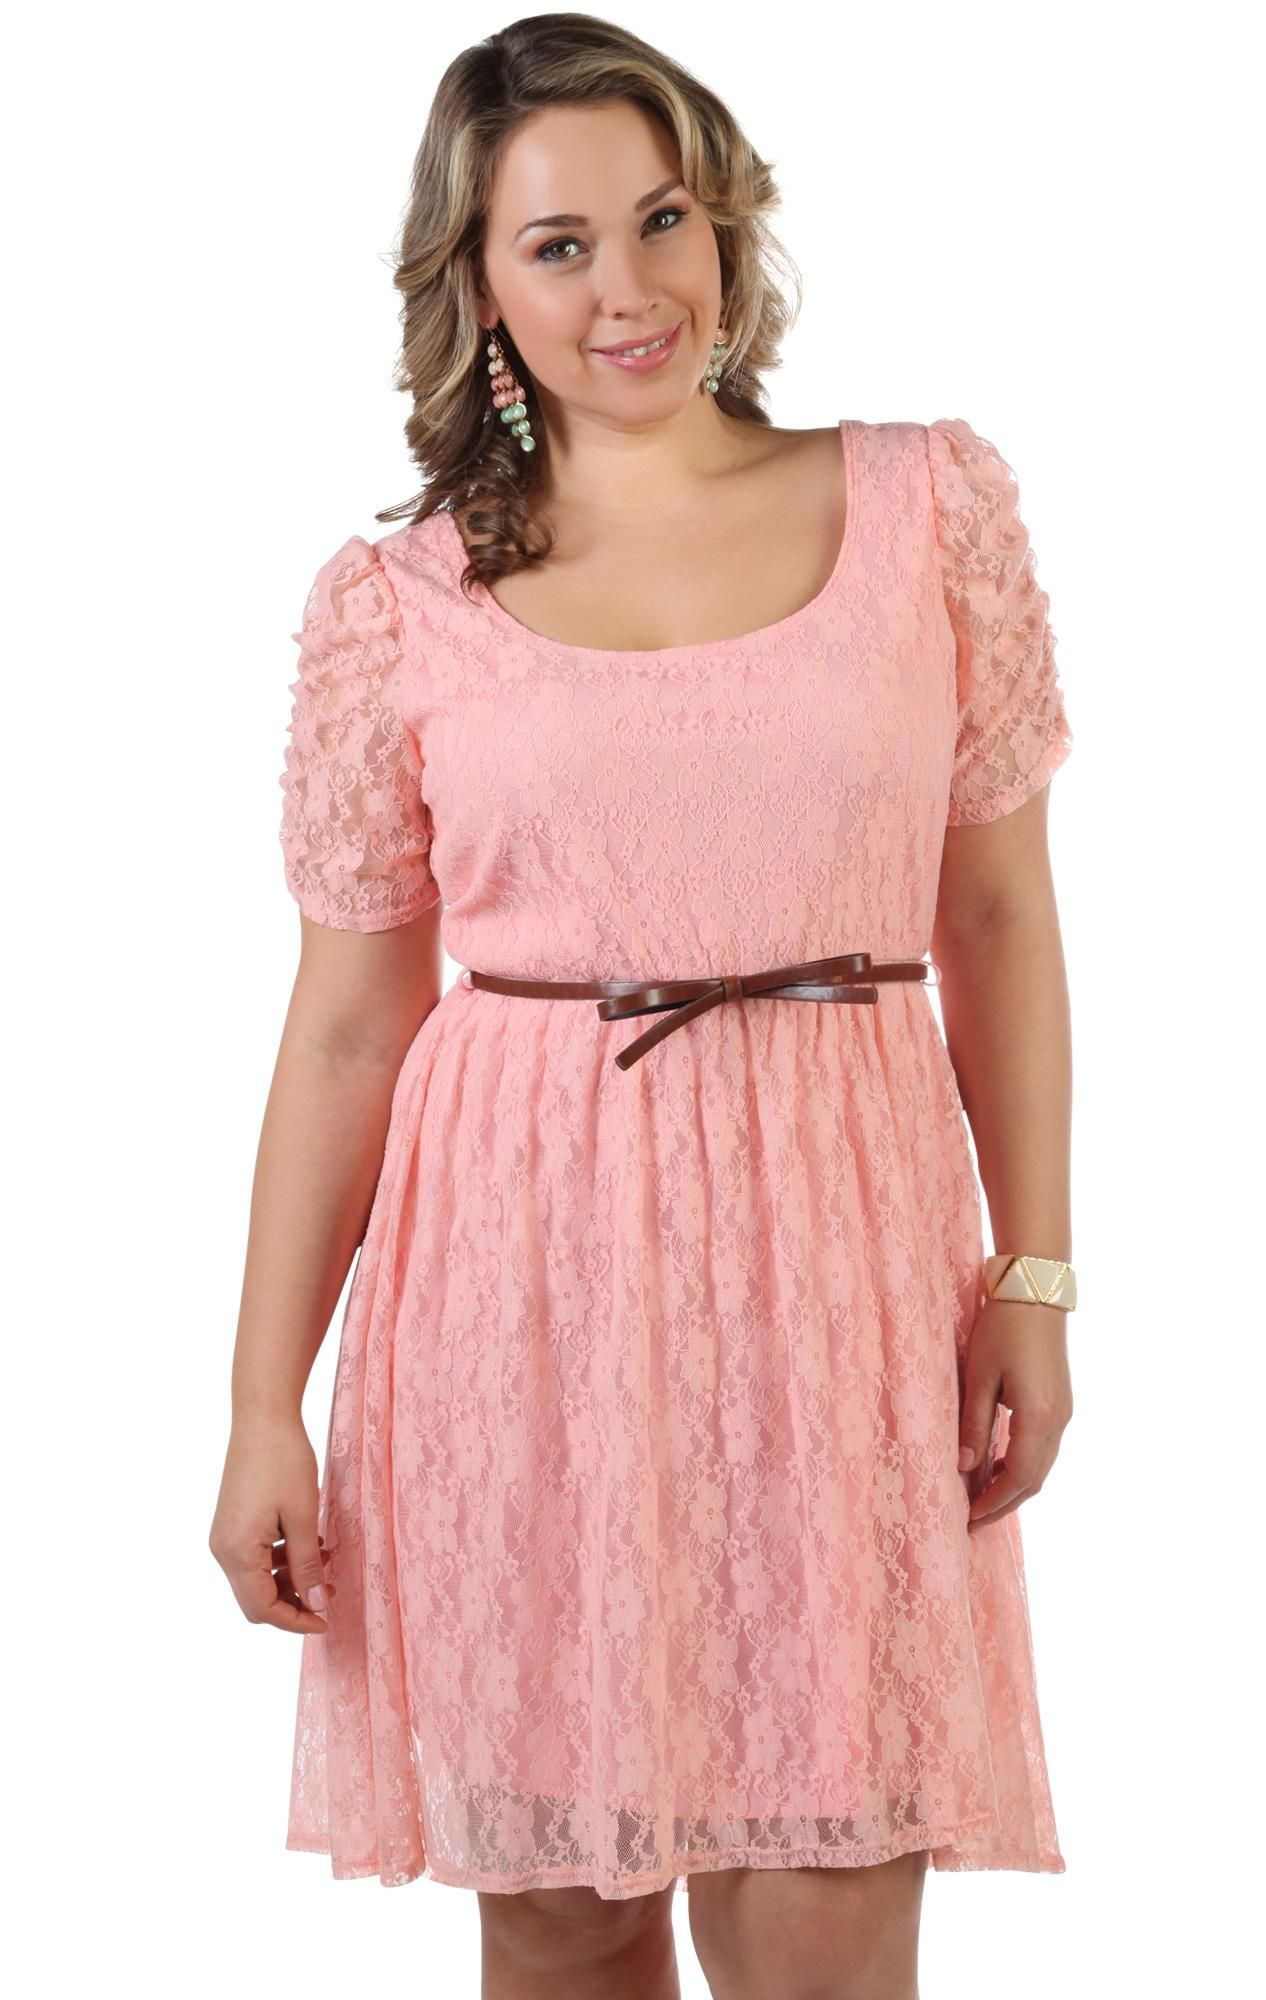 plus size lace high low dress with belted bow waist | Girly | Pinterest